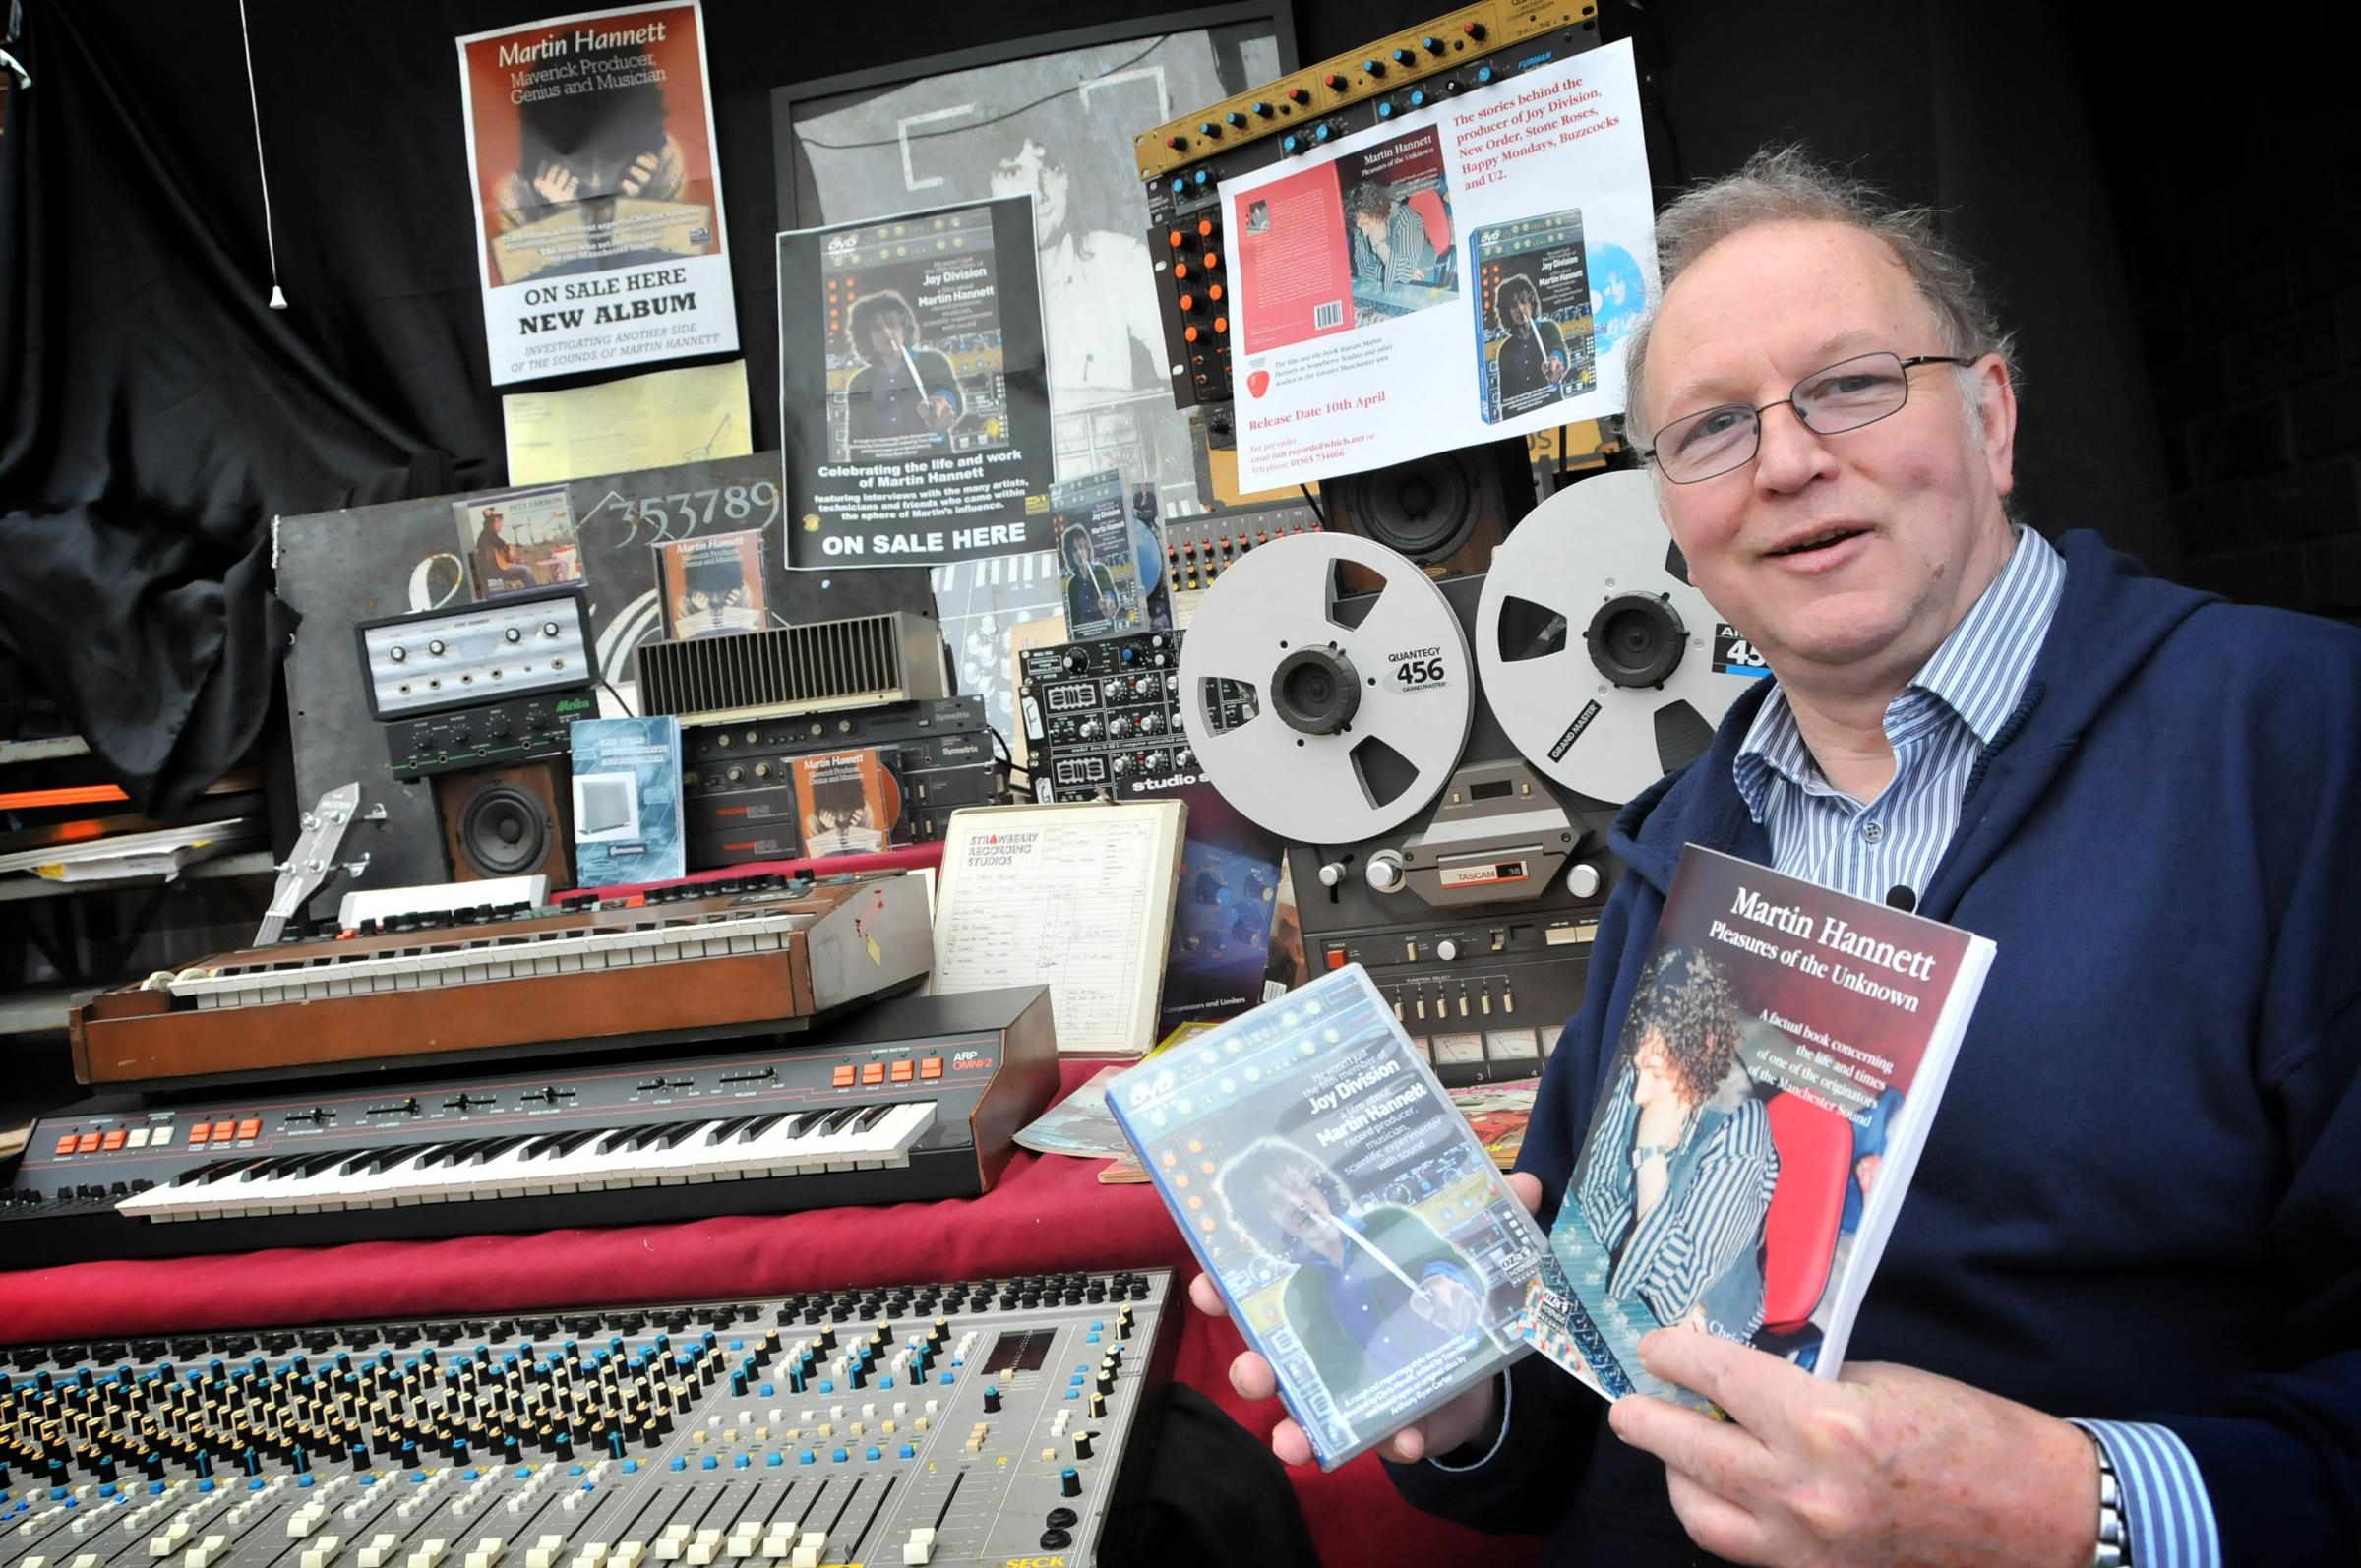 Chris Hewitt with the DVD and book